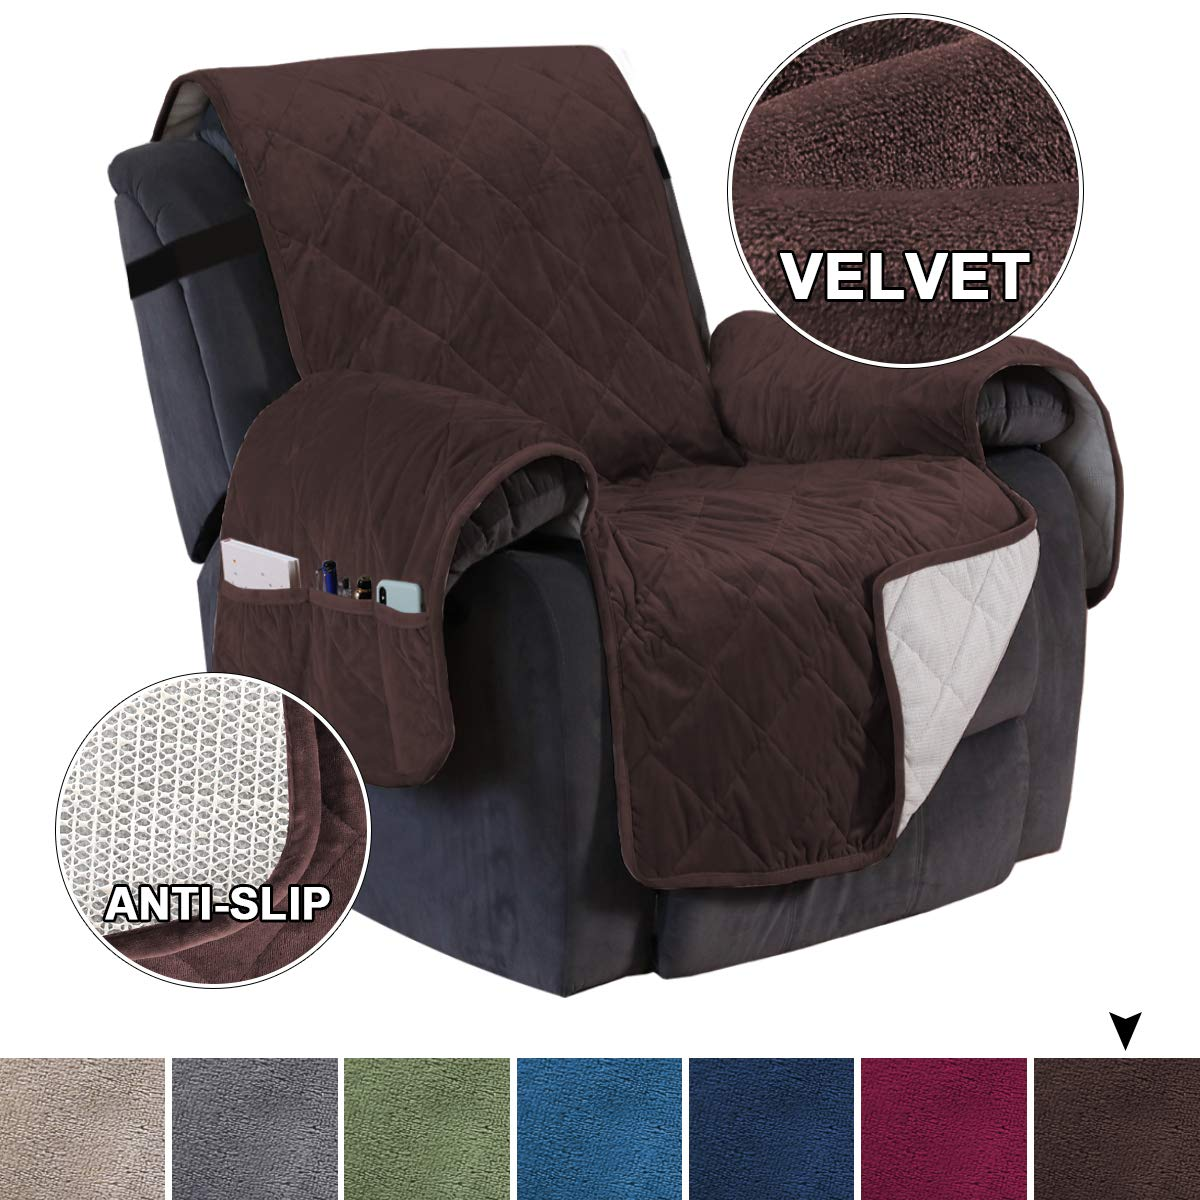 """Turquoize Velvet Slip Resistant Couch Slipcover Oversized Recliner Chair Covers, Seat Width to 28"""" Furniture Protector, 2"""" Strap/Hook Sofa Slipcover Cover Perfect Pets Kids (Recliner,91""""x82"""") Brown"""